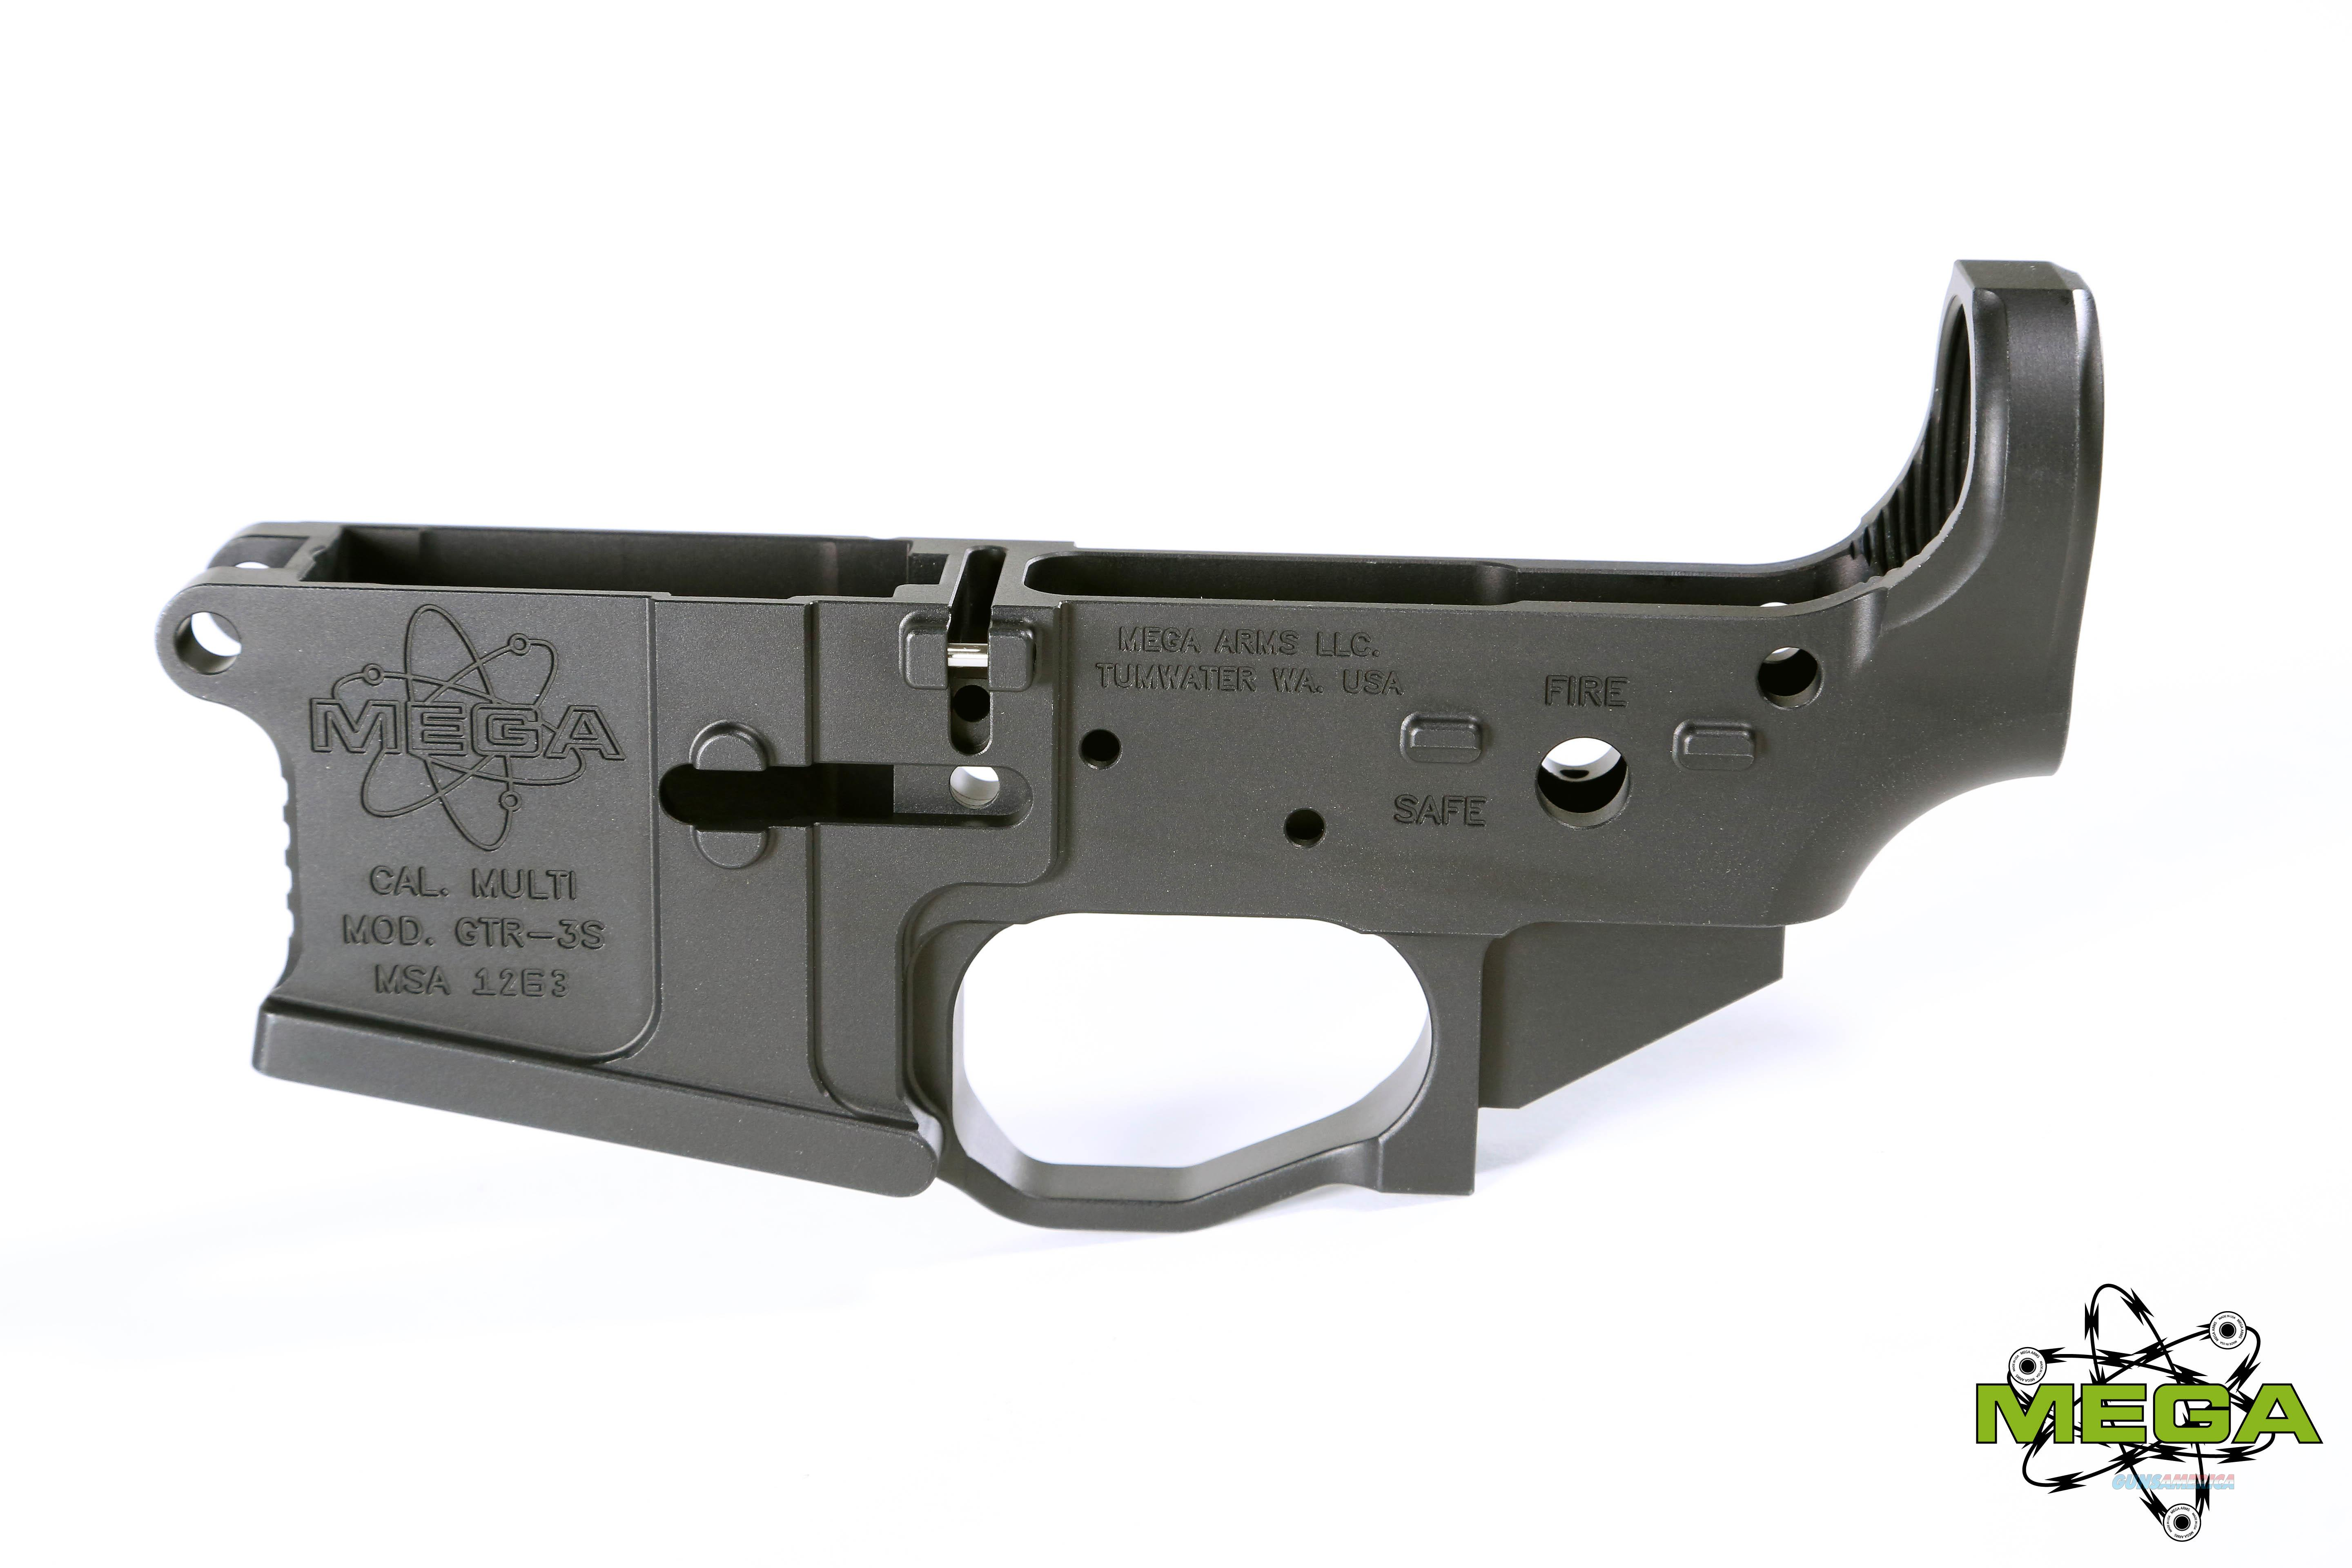 Mega GTR-3S AR15 Billet Lower - 25% off MSRP!  Guns > Rifles > AR-15 Rifles - Small Manufacturers > Lower Only